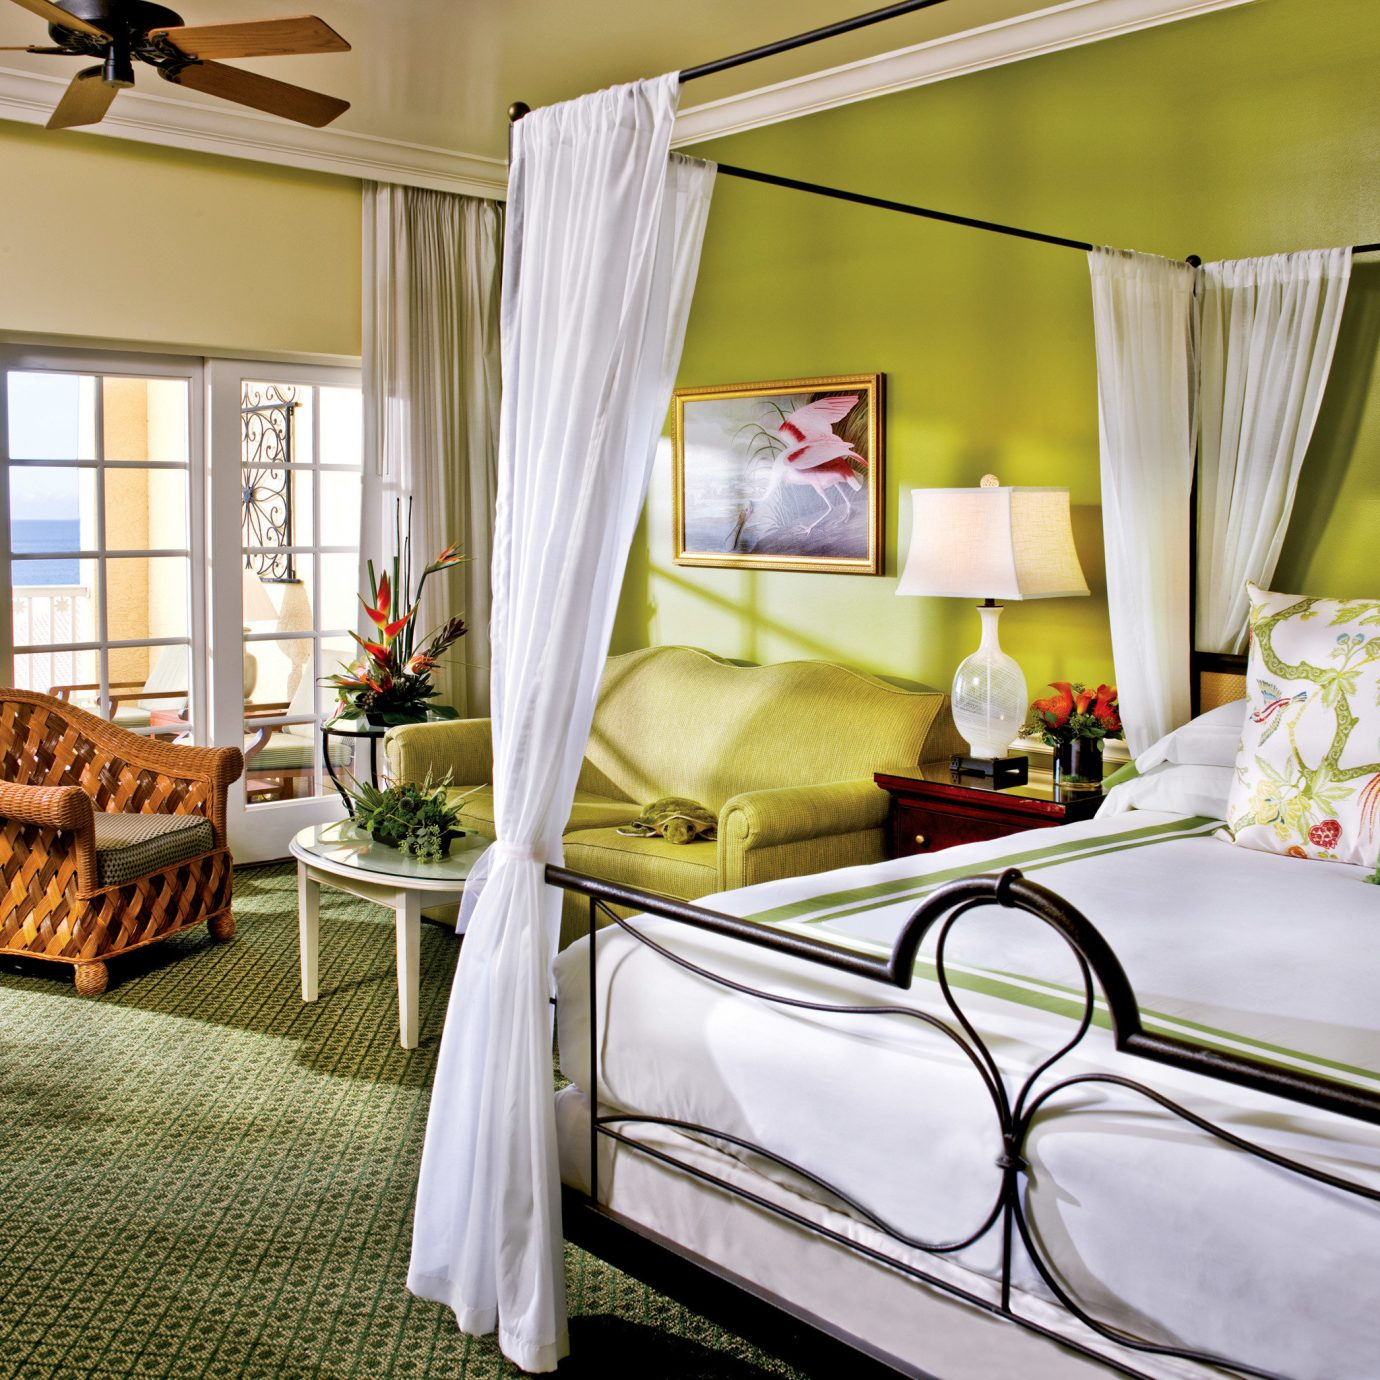 Balcony Bedroom Modern Patio Resort property home cottage living room bed sheet Suite farmhouse